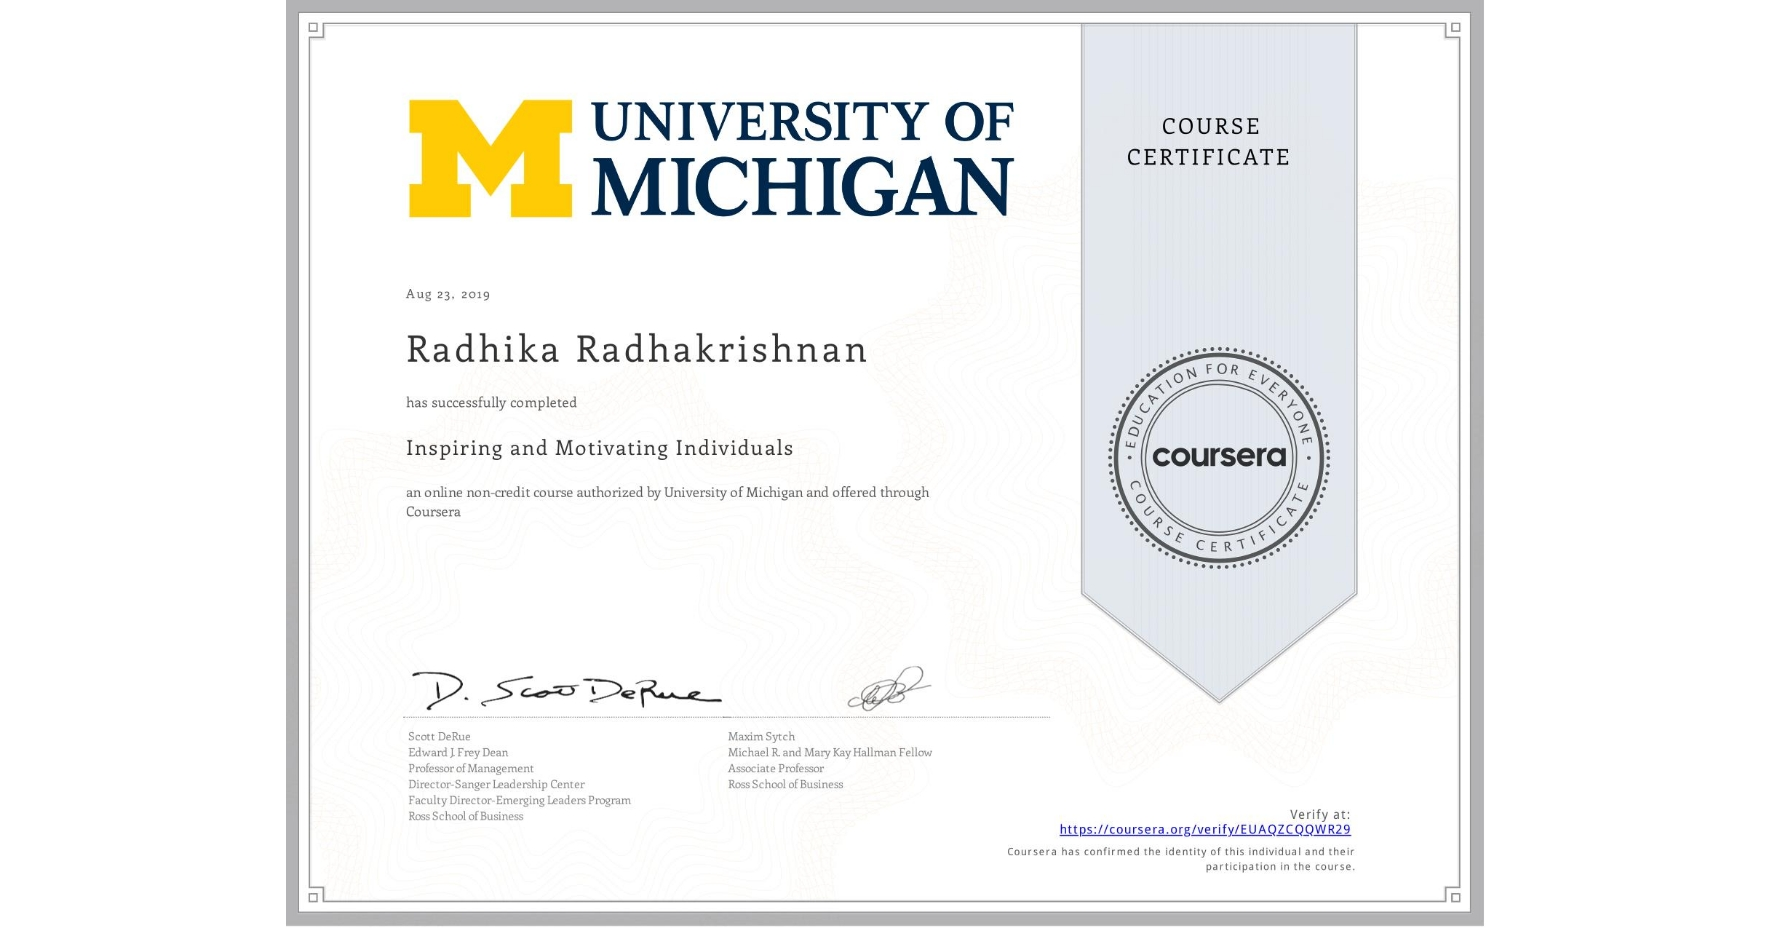 View certificate for Radhika Radhakrishnan, Inspiring and Motivating Individuals, an online non-credit course authorized by University of Michigan and offered through Coursera